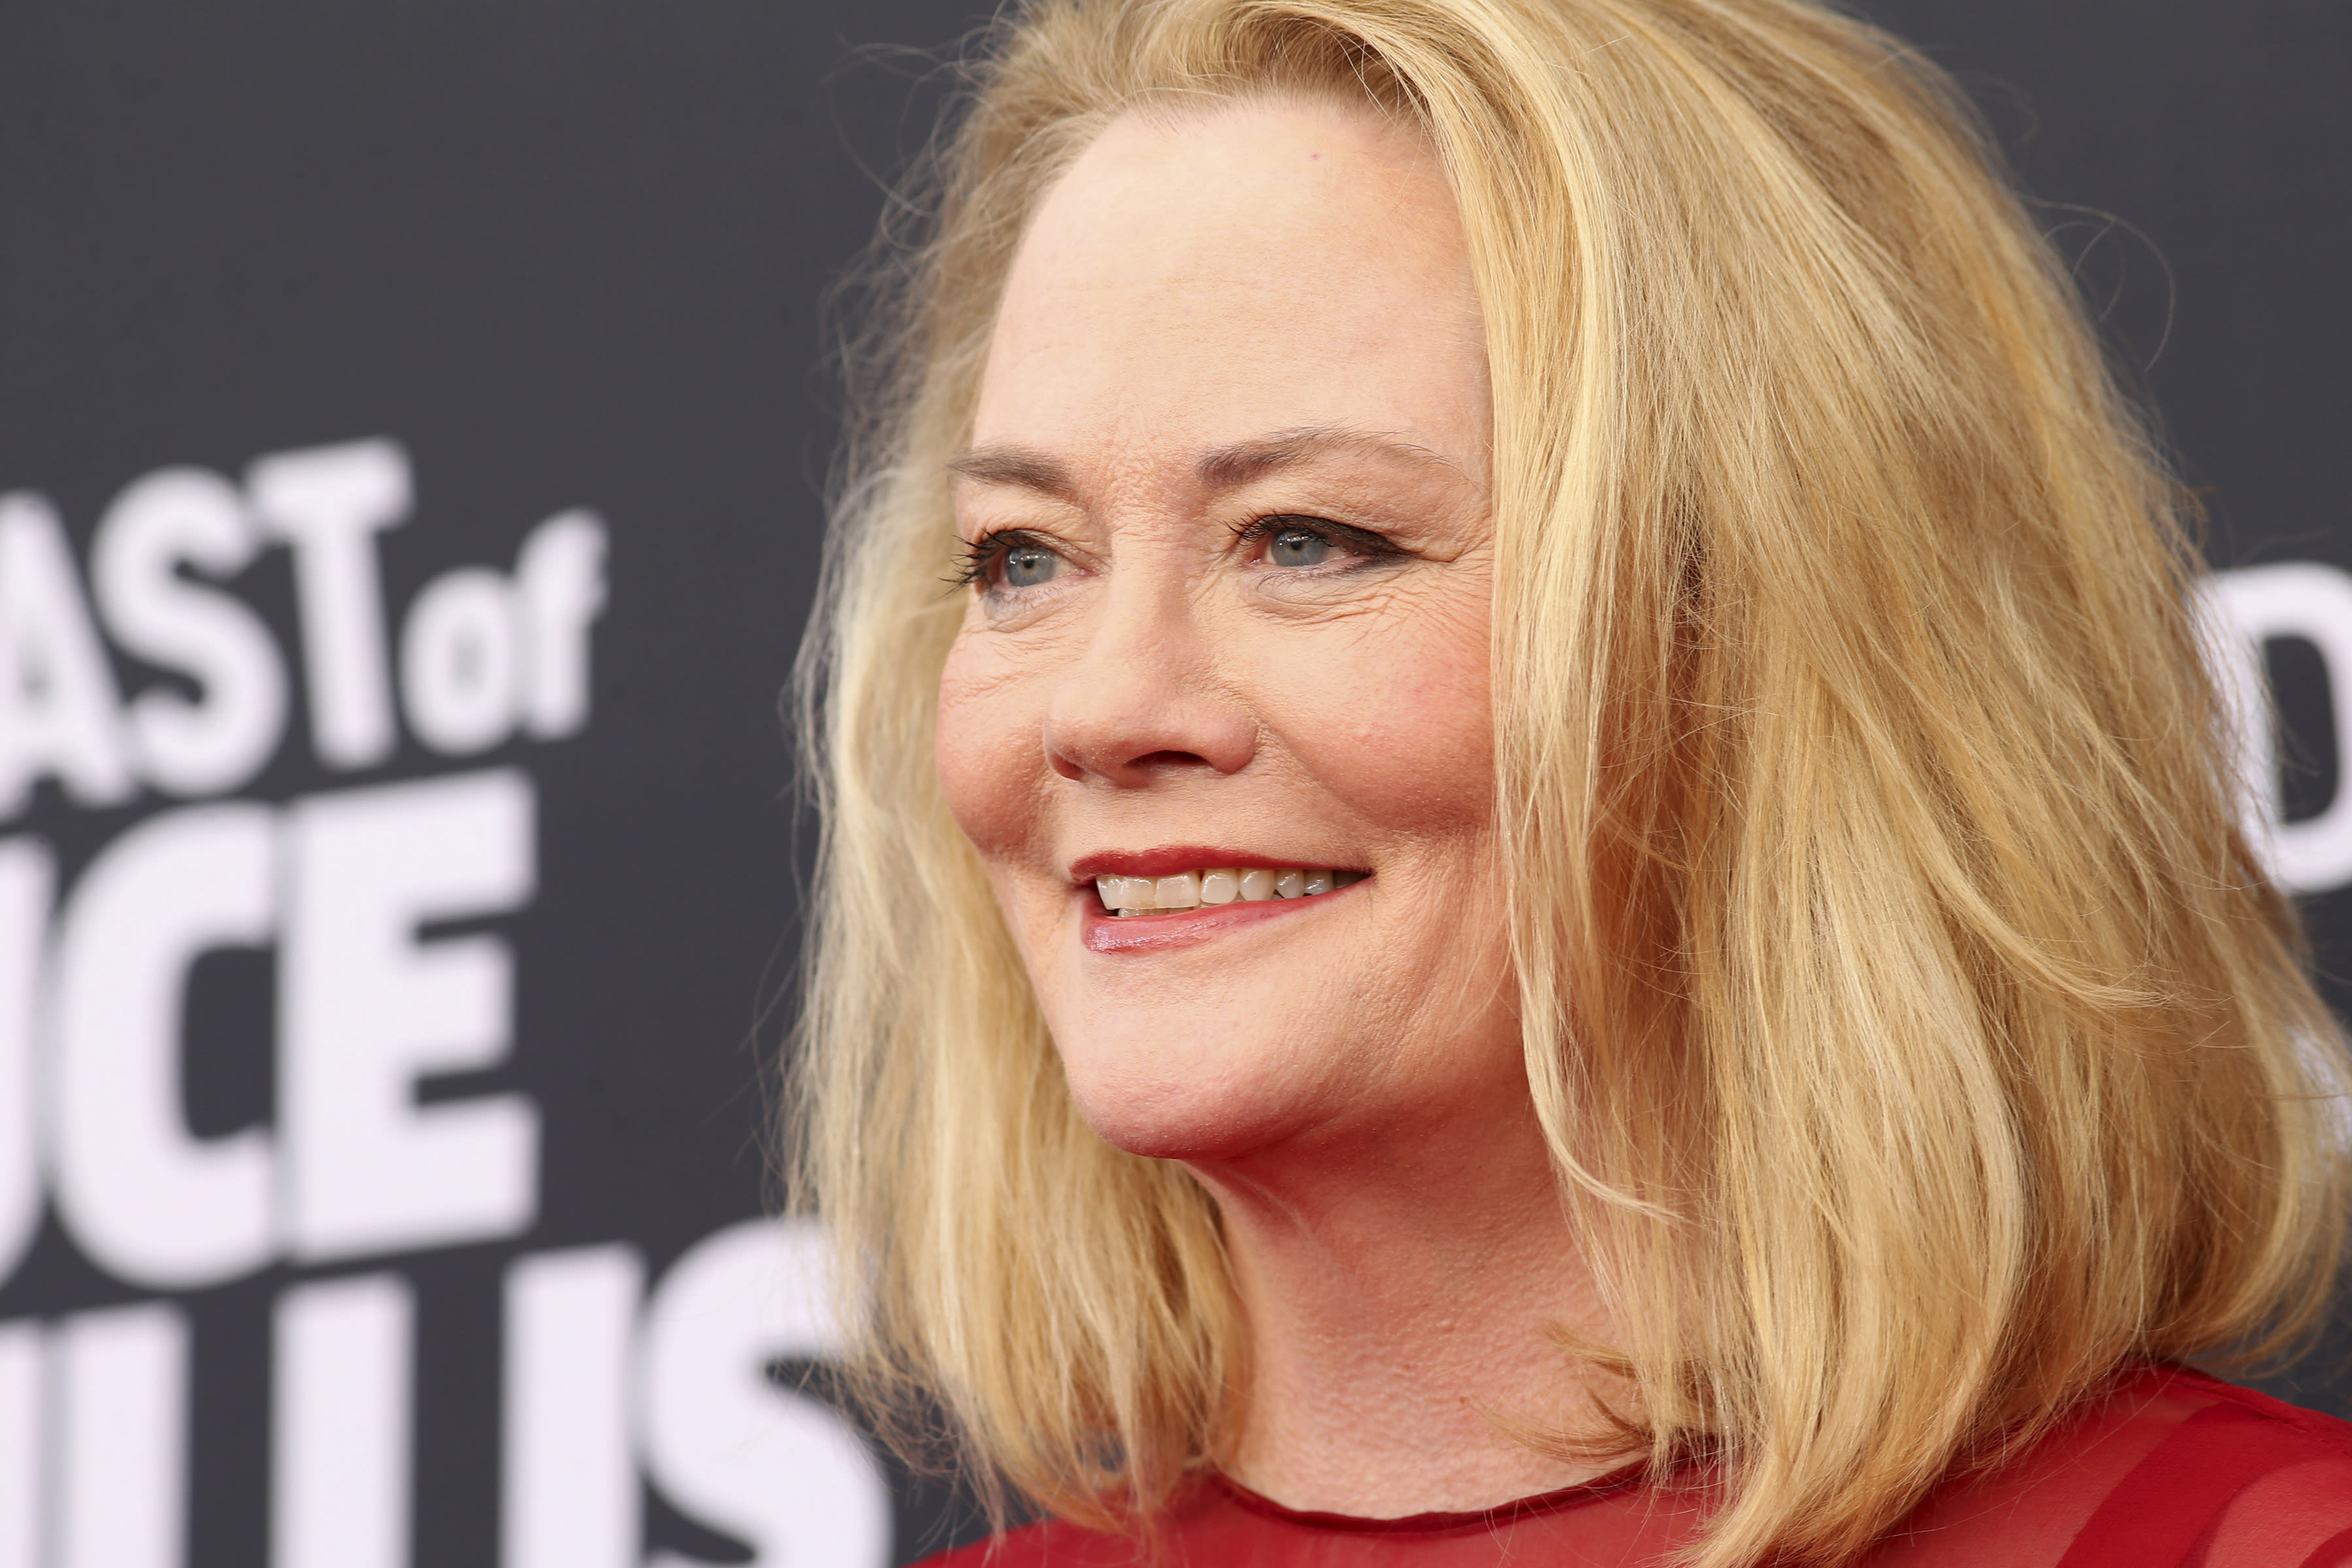 cybill shepherd says les moonves propositioned her